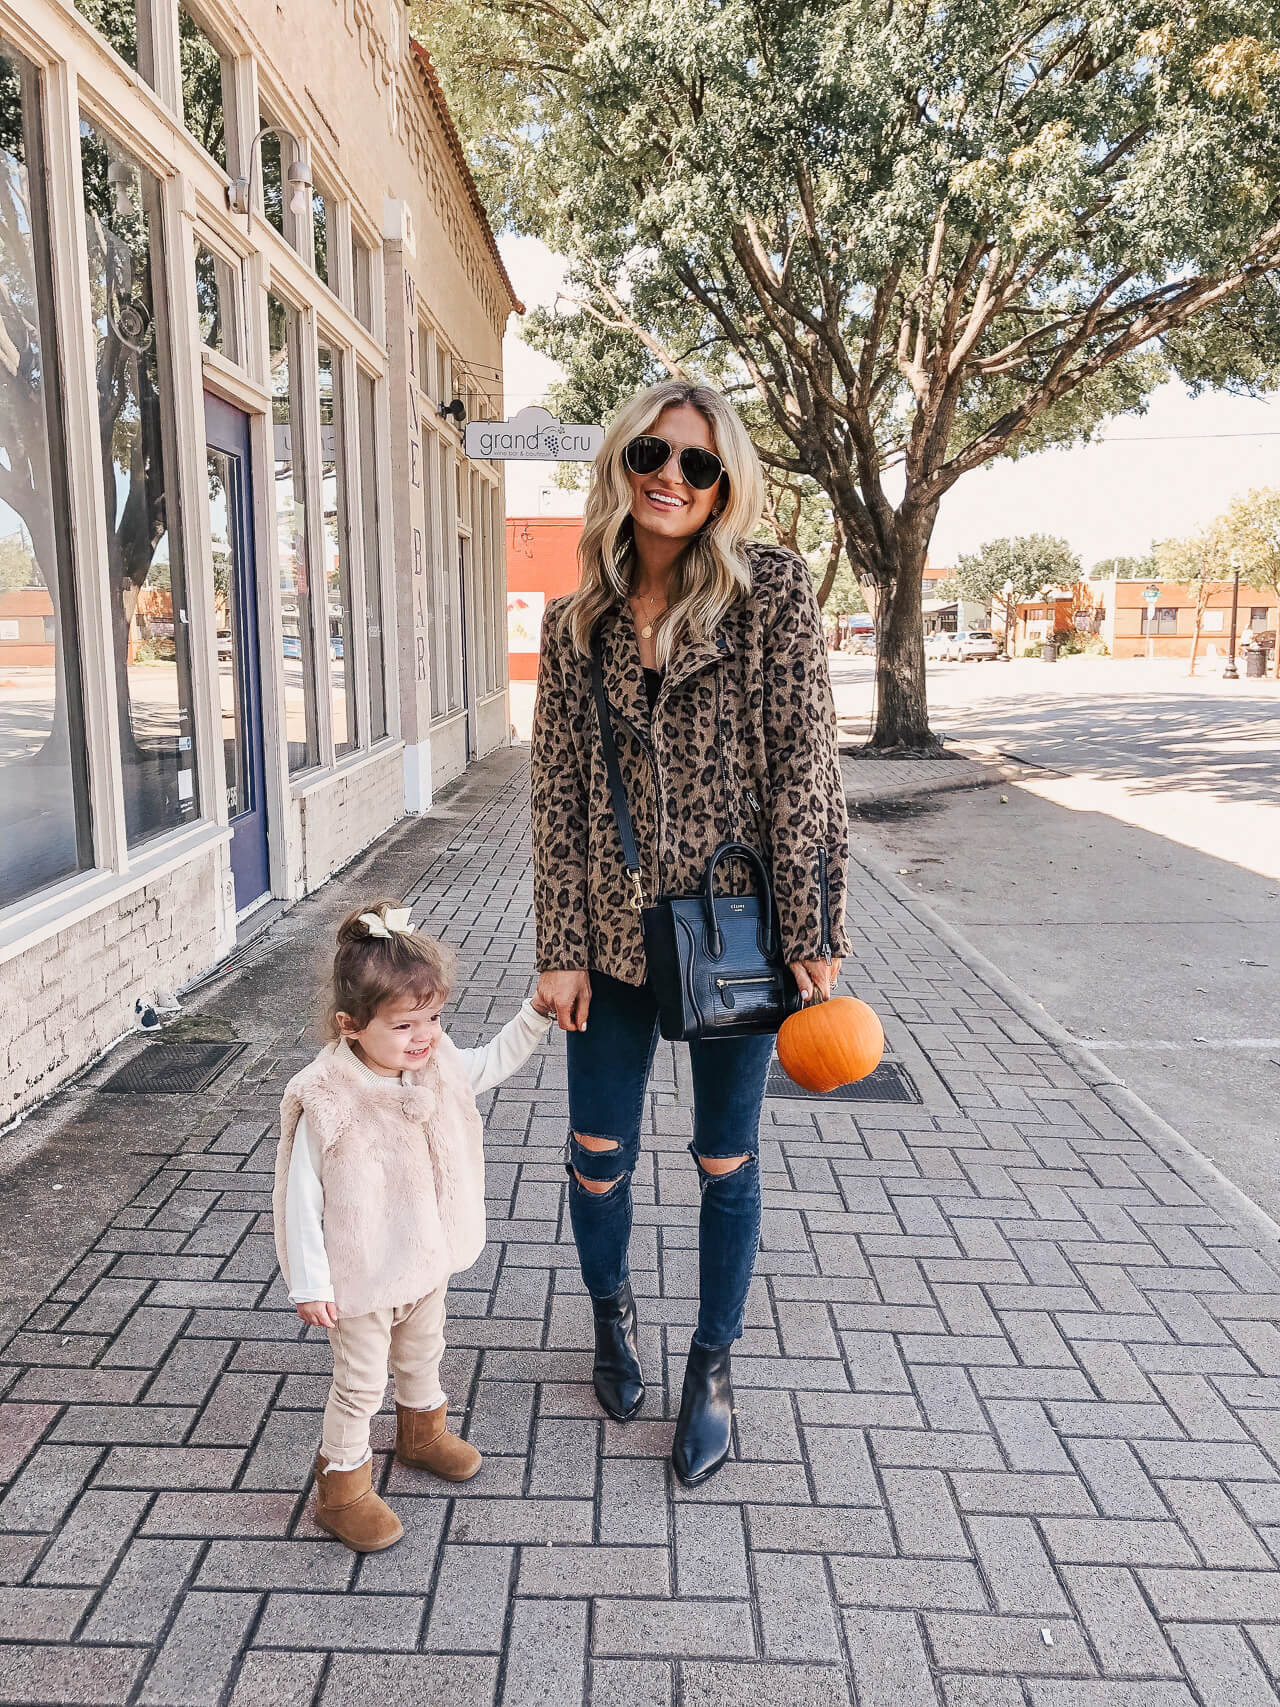 Fort Worth Texas travel guide! - M Loves M @marmar